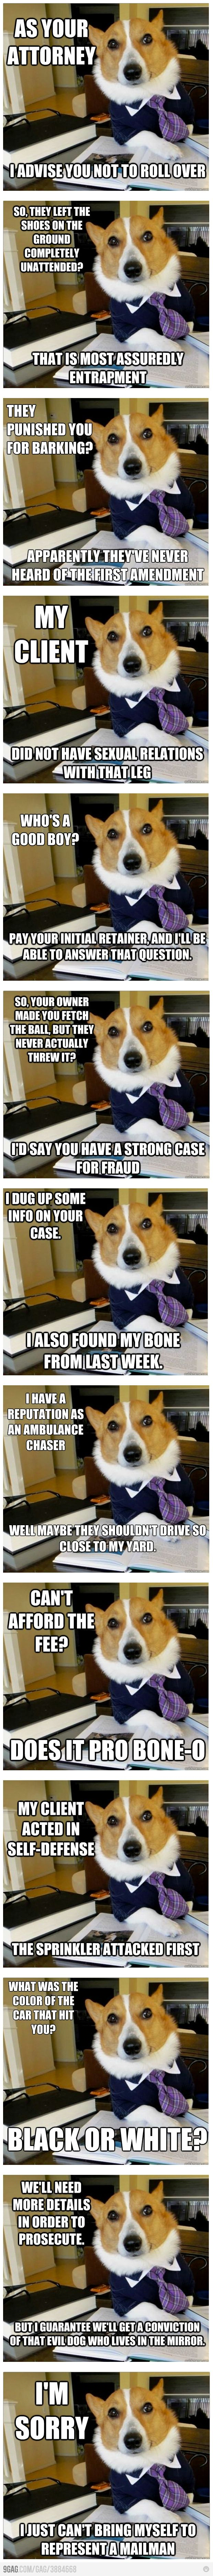 Dog lawyer (Most, if not all of them).